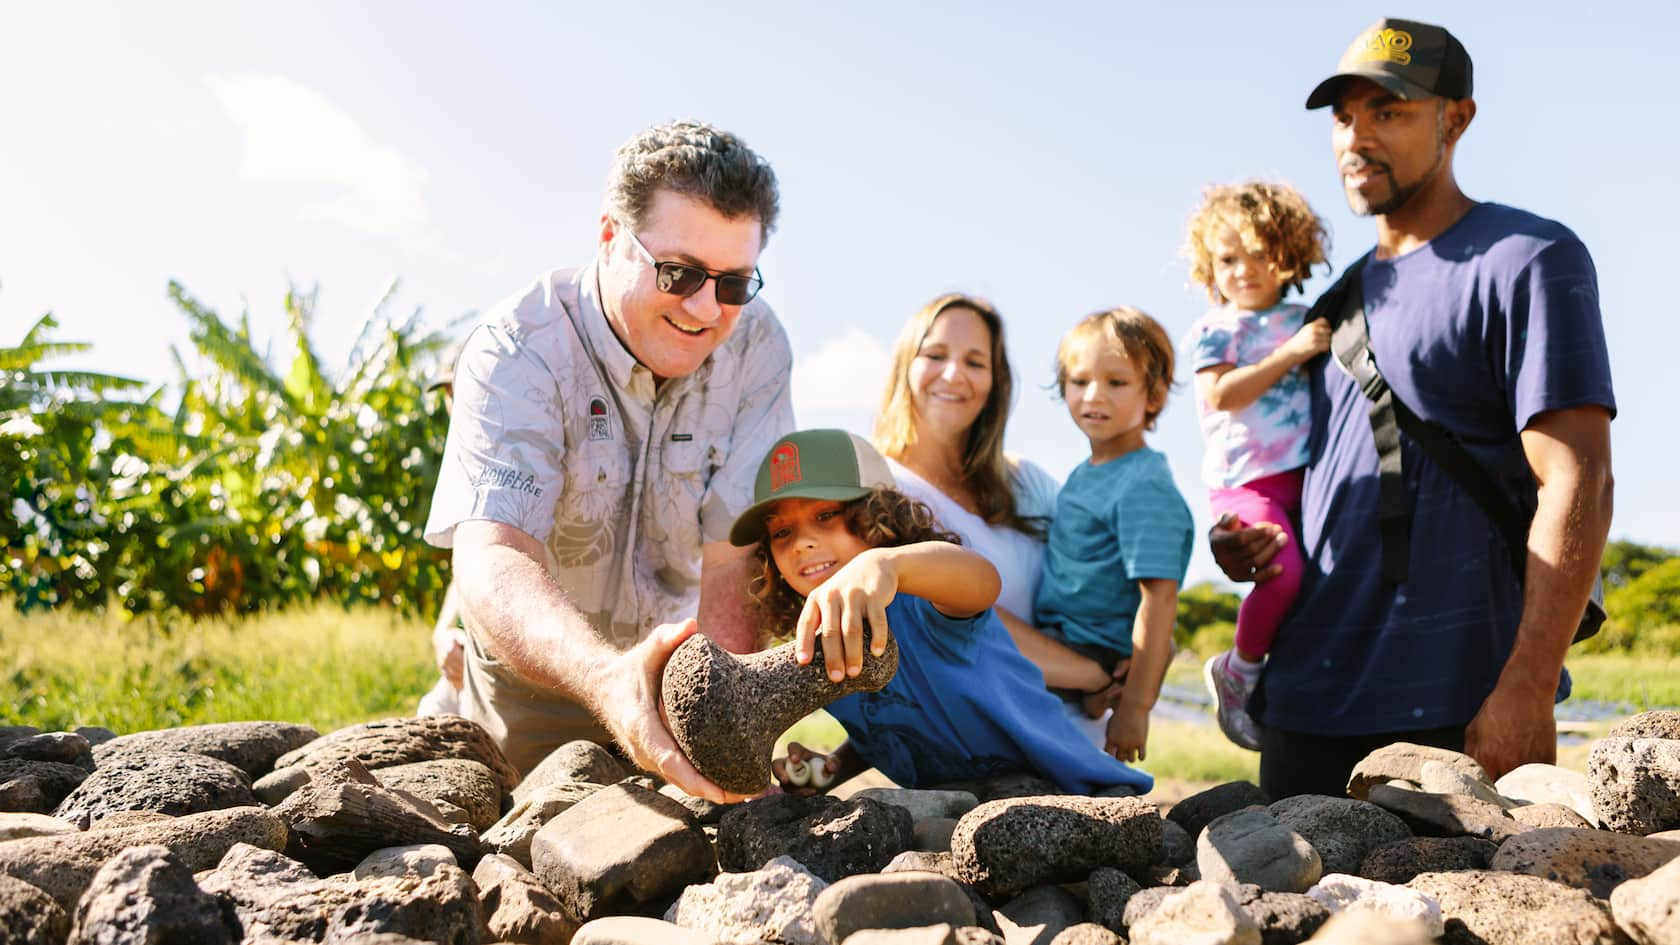 Adults and kids look at a pile of rocks, fascinated by a lava rock with a distinctive shape